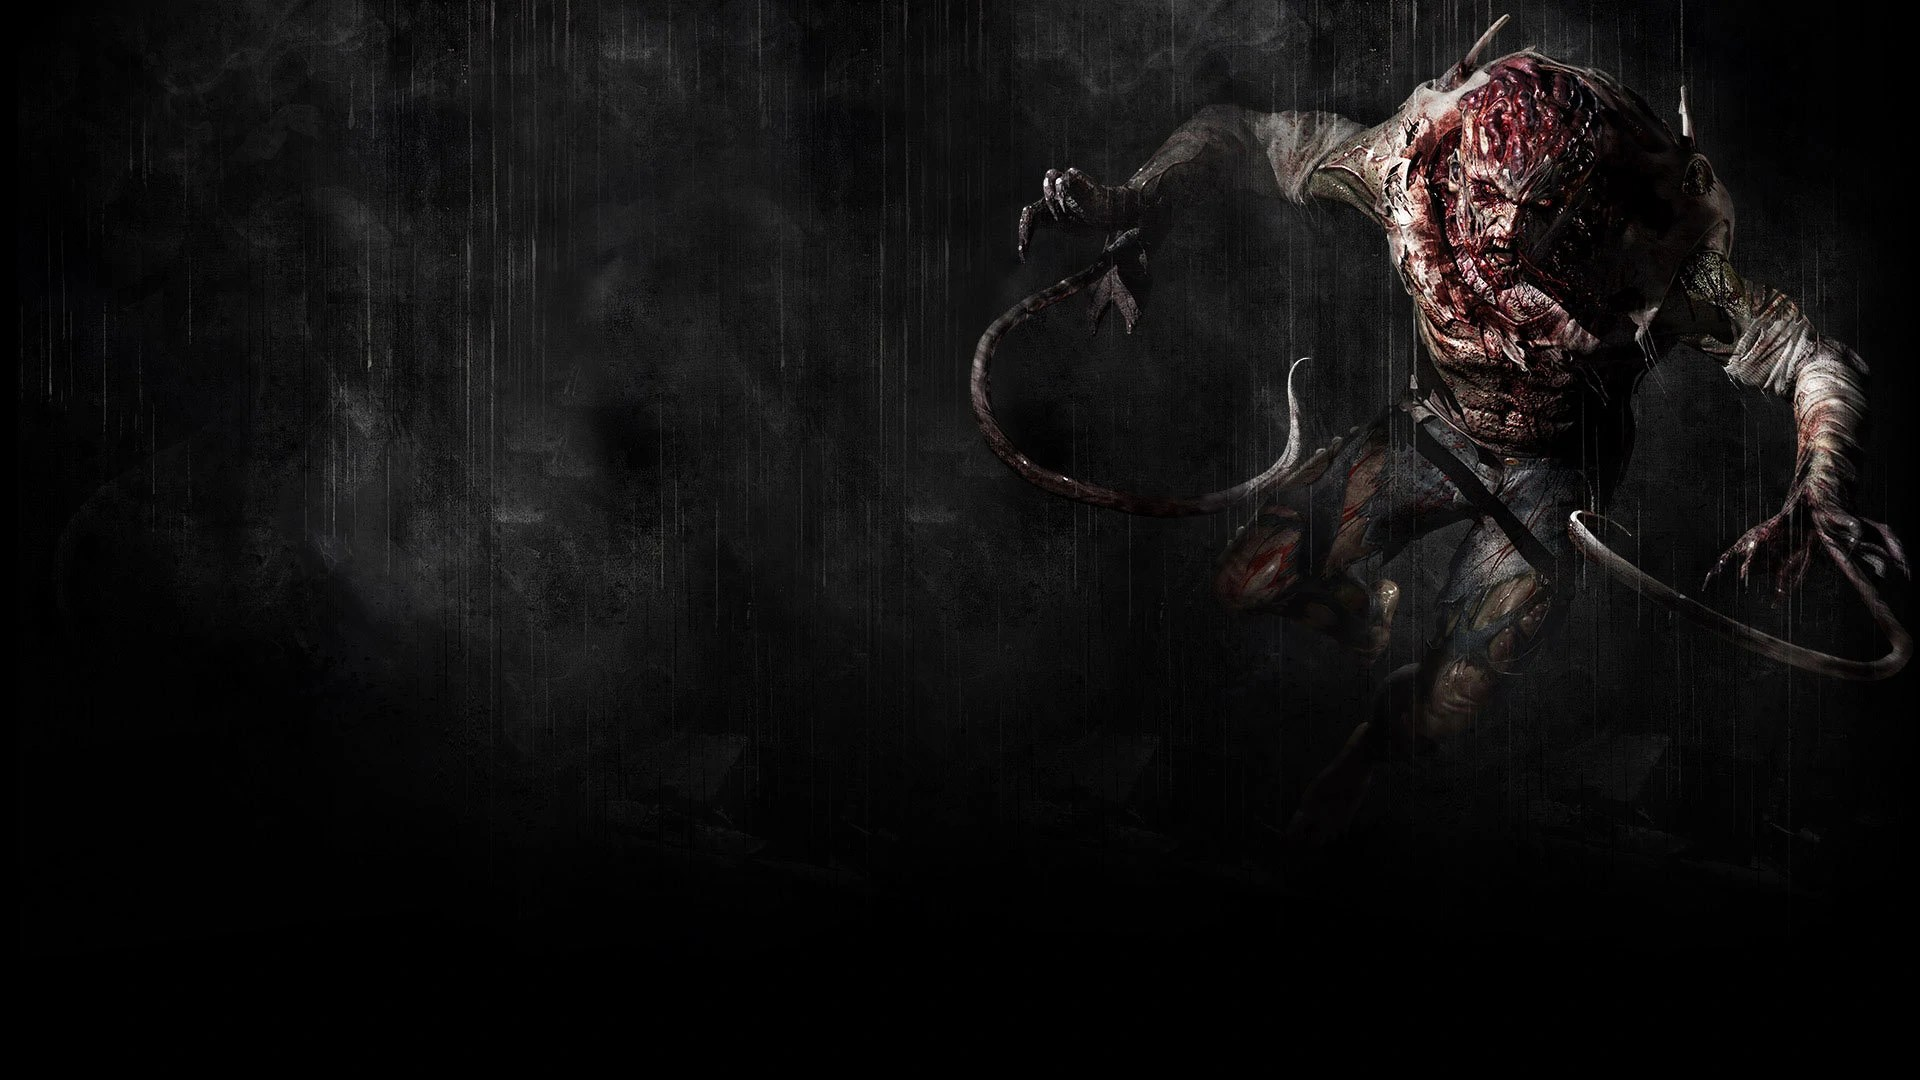 L Double Monitor Girl Wallpapers Image Dying Light Background Be The Zombie Jpg Steam